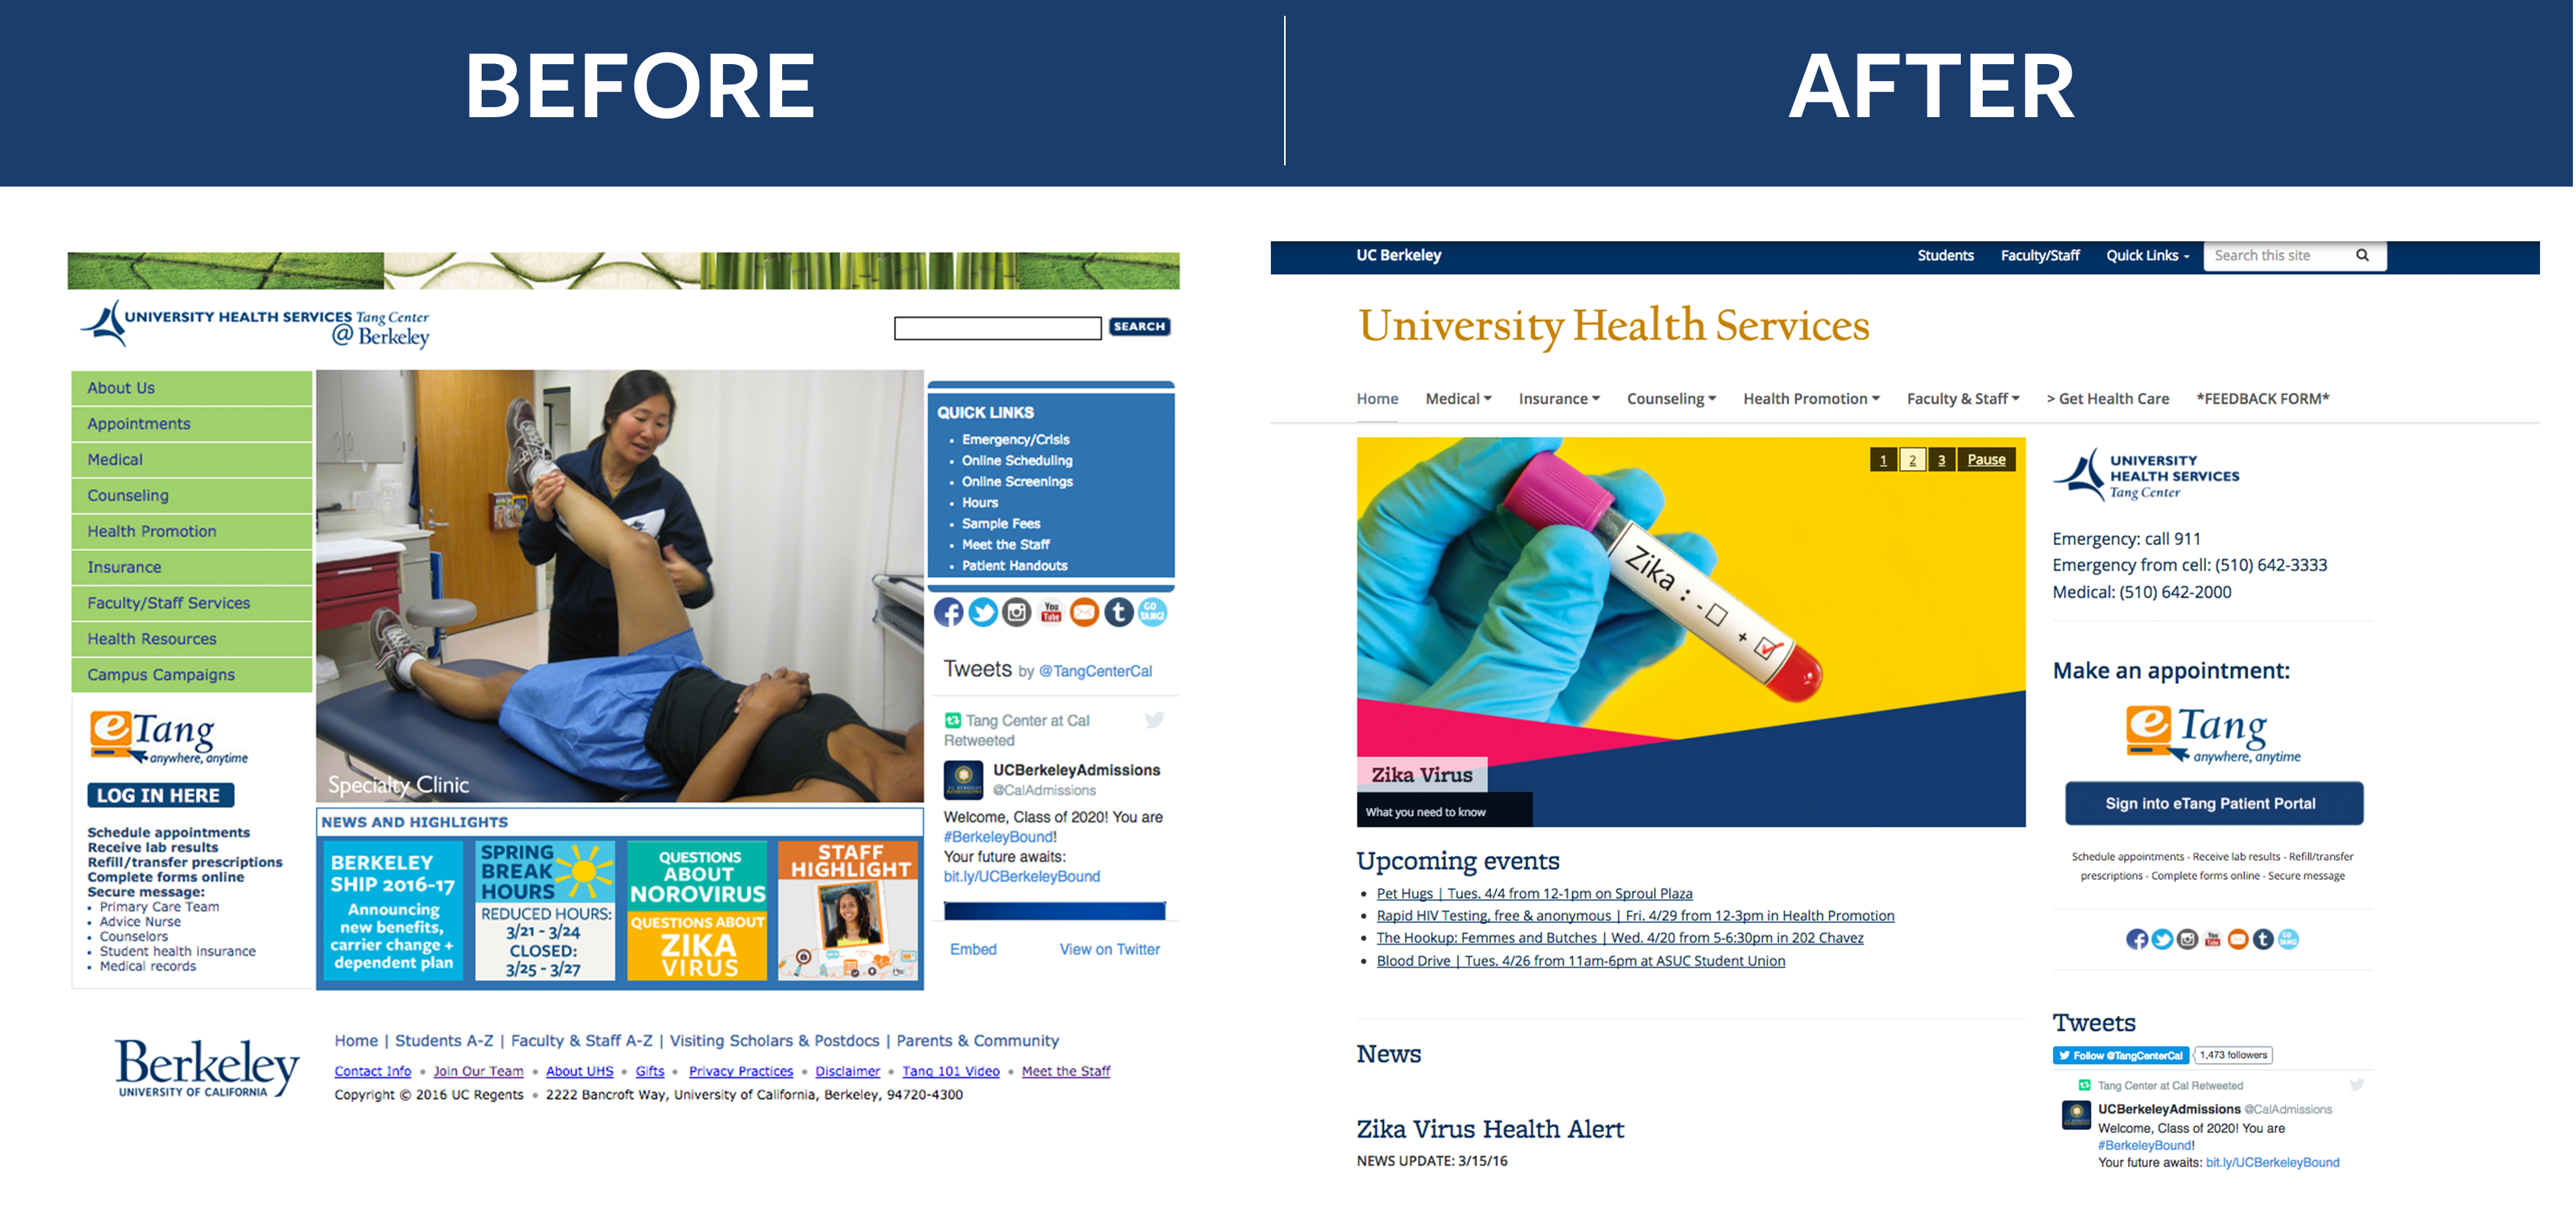 it s here announcing the launch of our newly redesigned website a special thanks to the uhs communications team open berkeley link is external team and students and staff participating in the redesign process